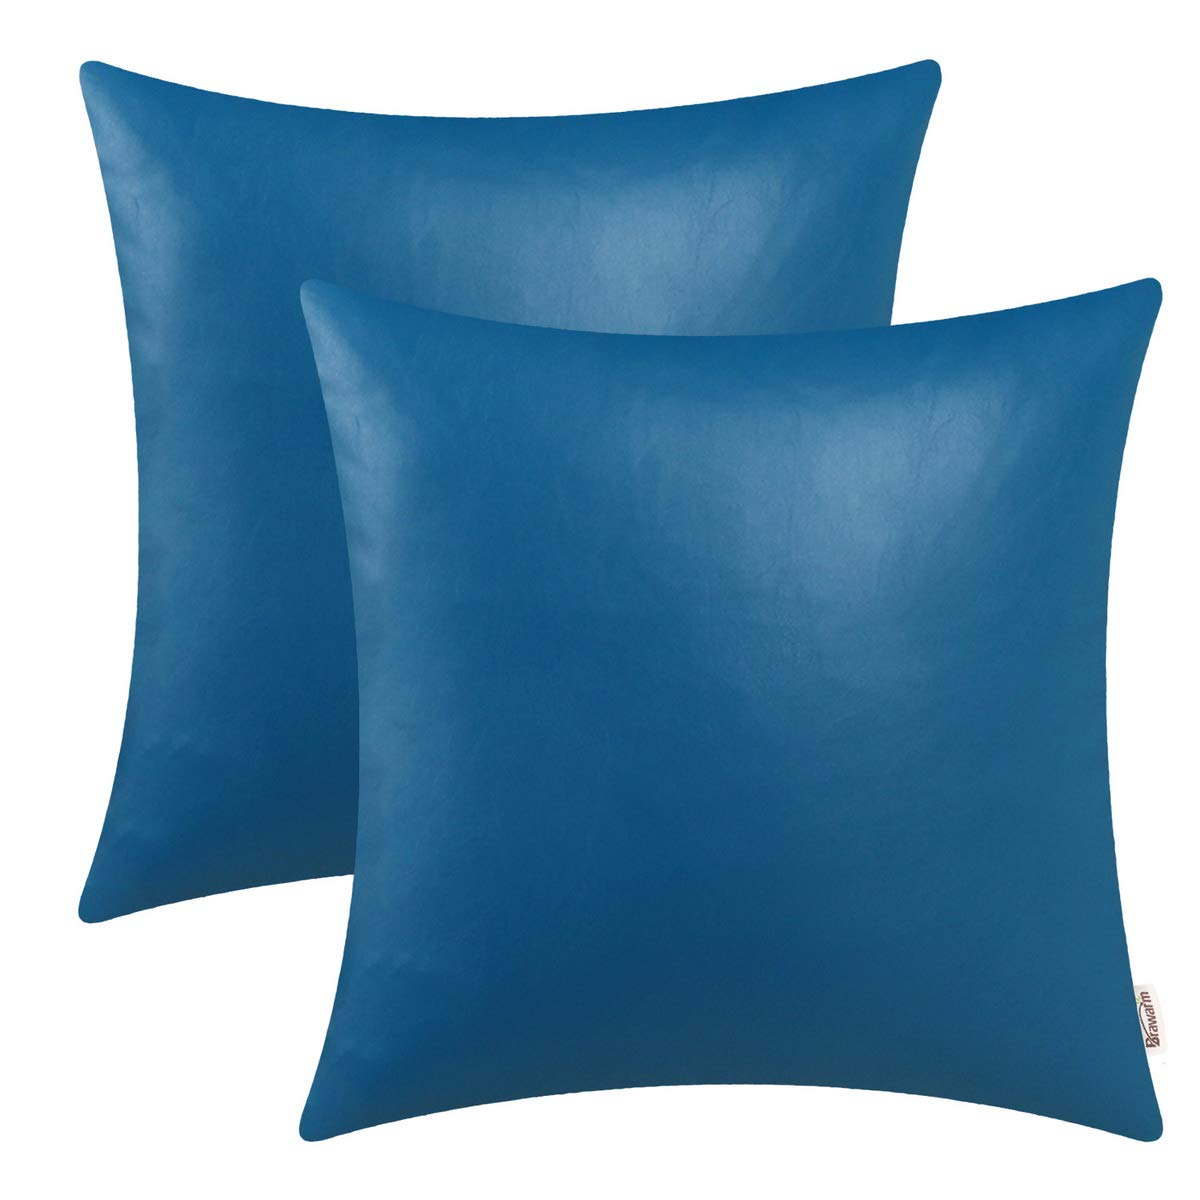 BRAWARM Pack of 2 Cozy Throw Pillow Covers Cases for Couch Sofa Home Decoration Solid Dyed Soft Faux Leather Both Sides 22 X 22 Inches Vivid Blue